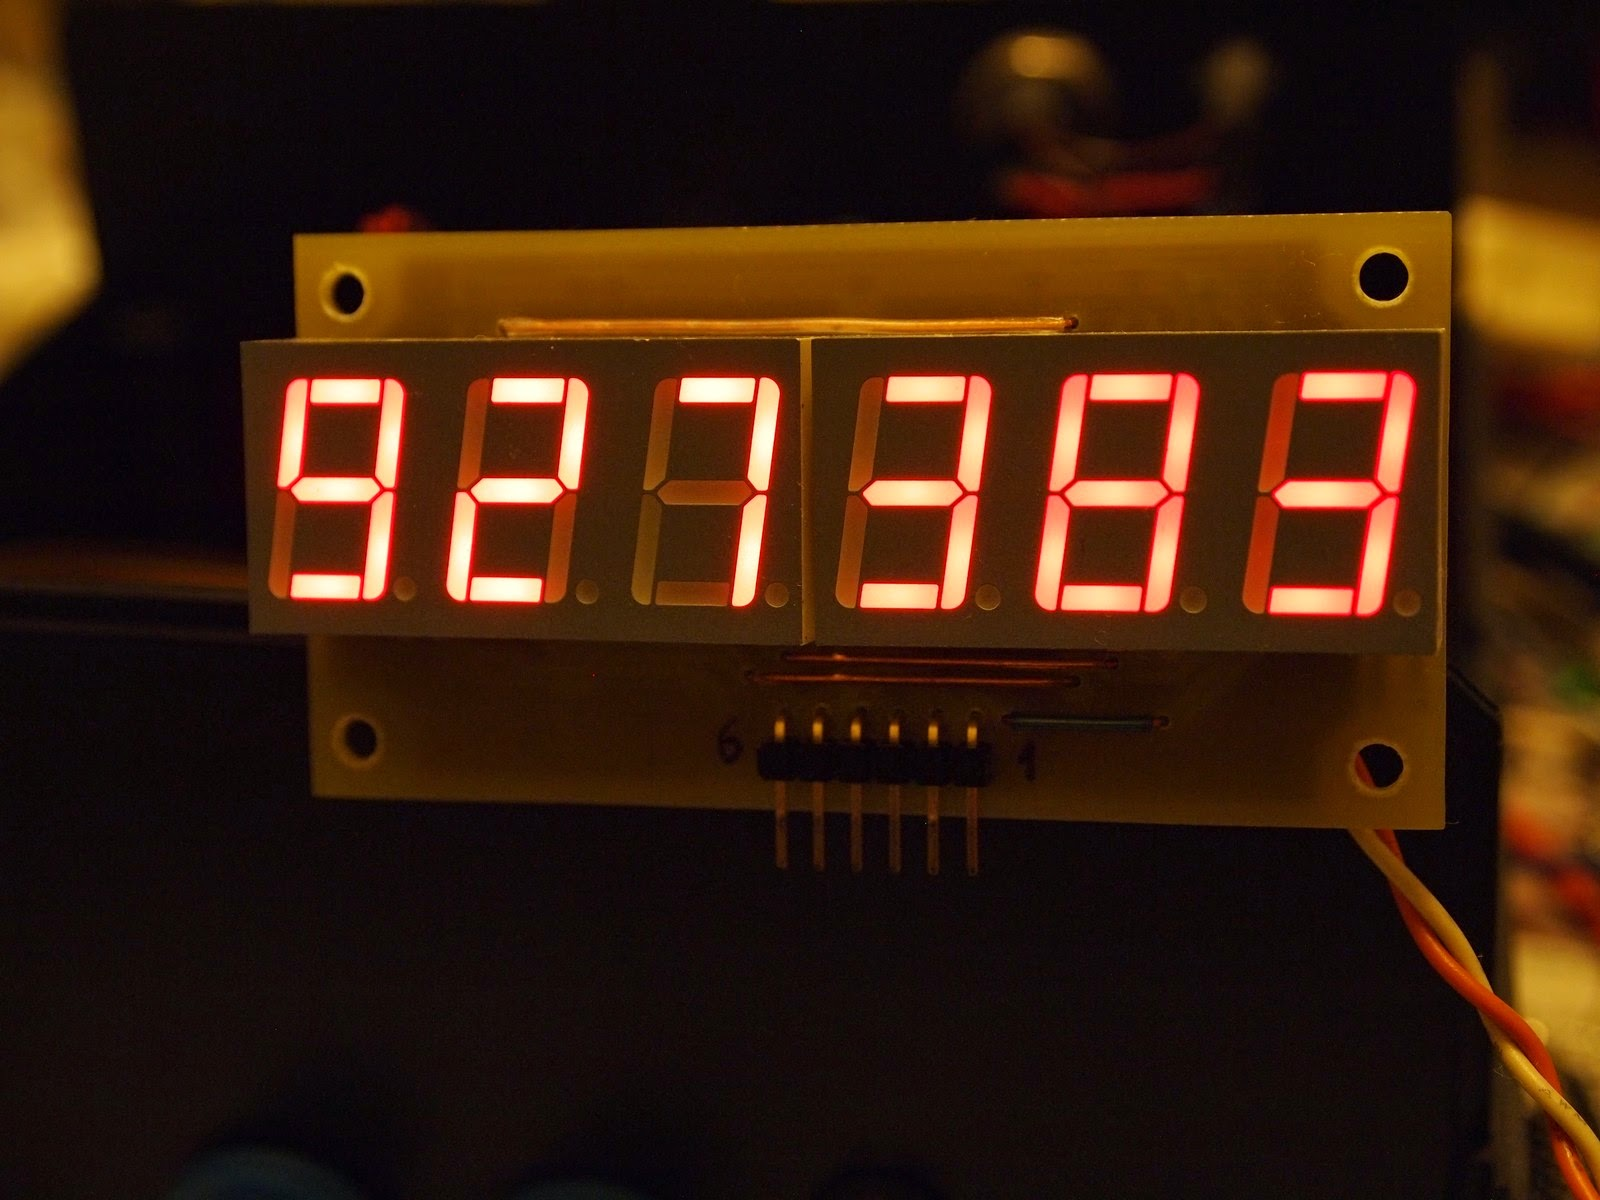 Frequency Counter With Pic16f628a Electronics Lab Using Pic16f84 Freqc 16f628a3